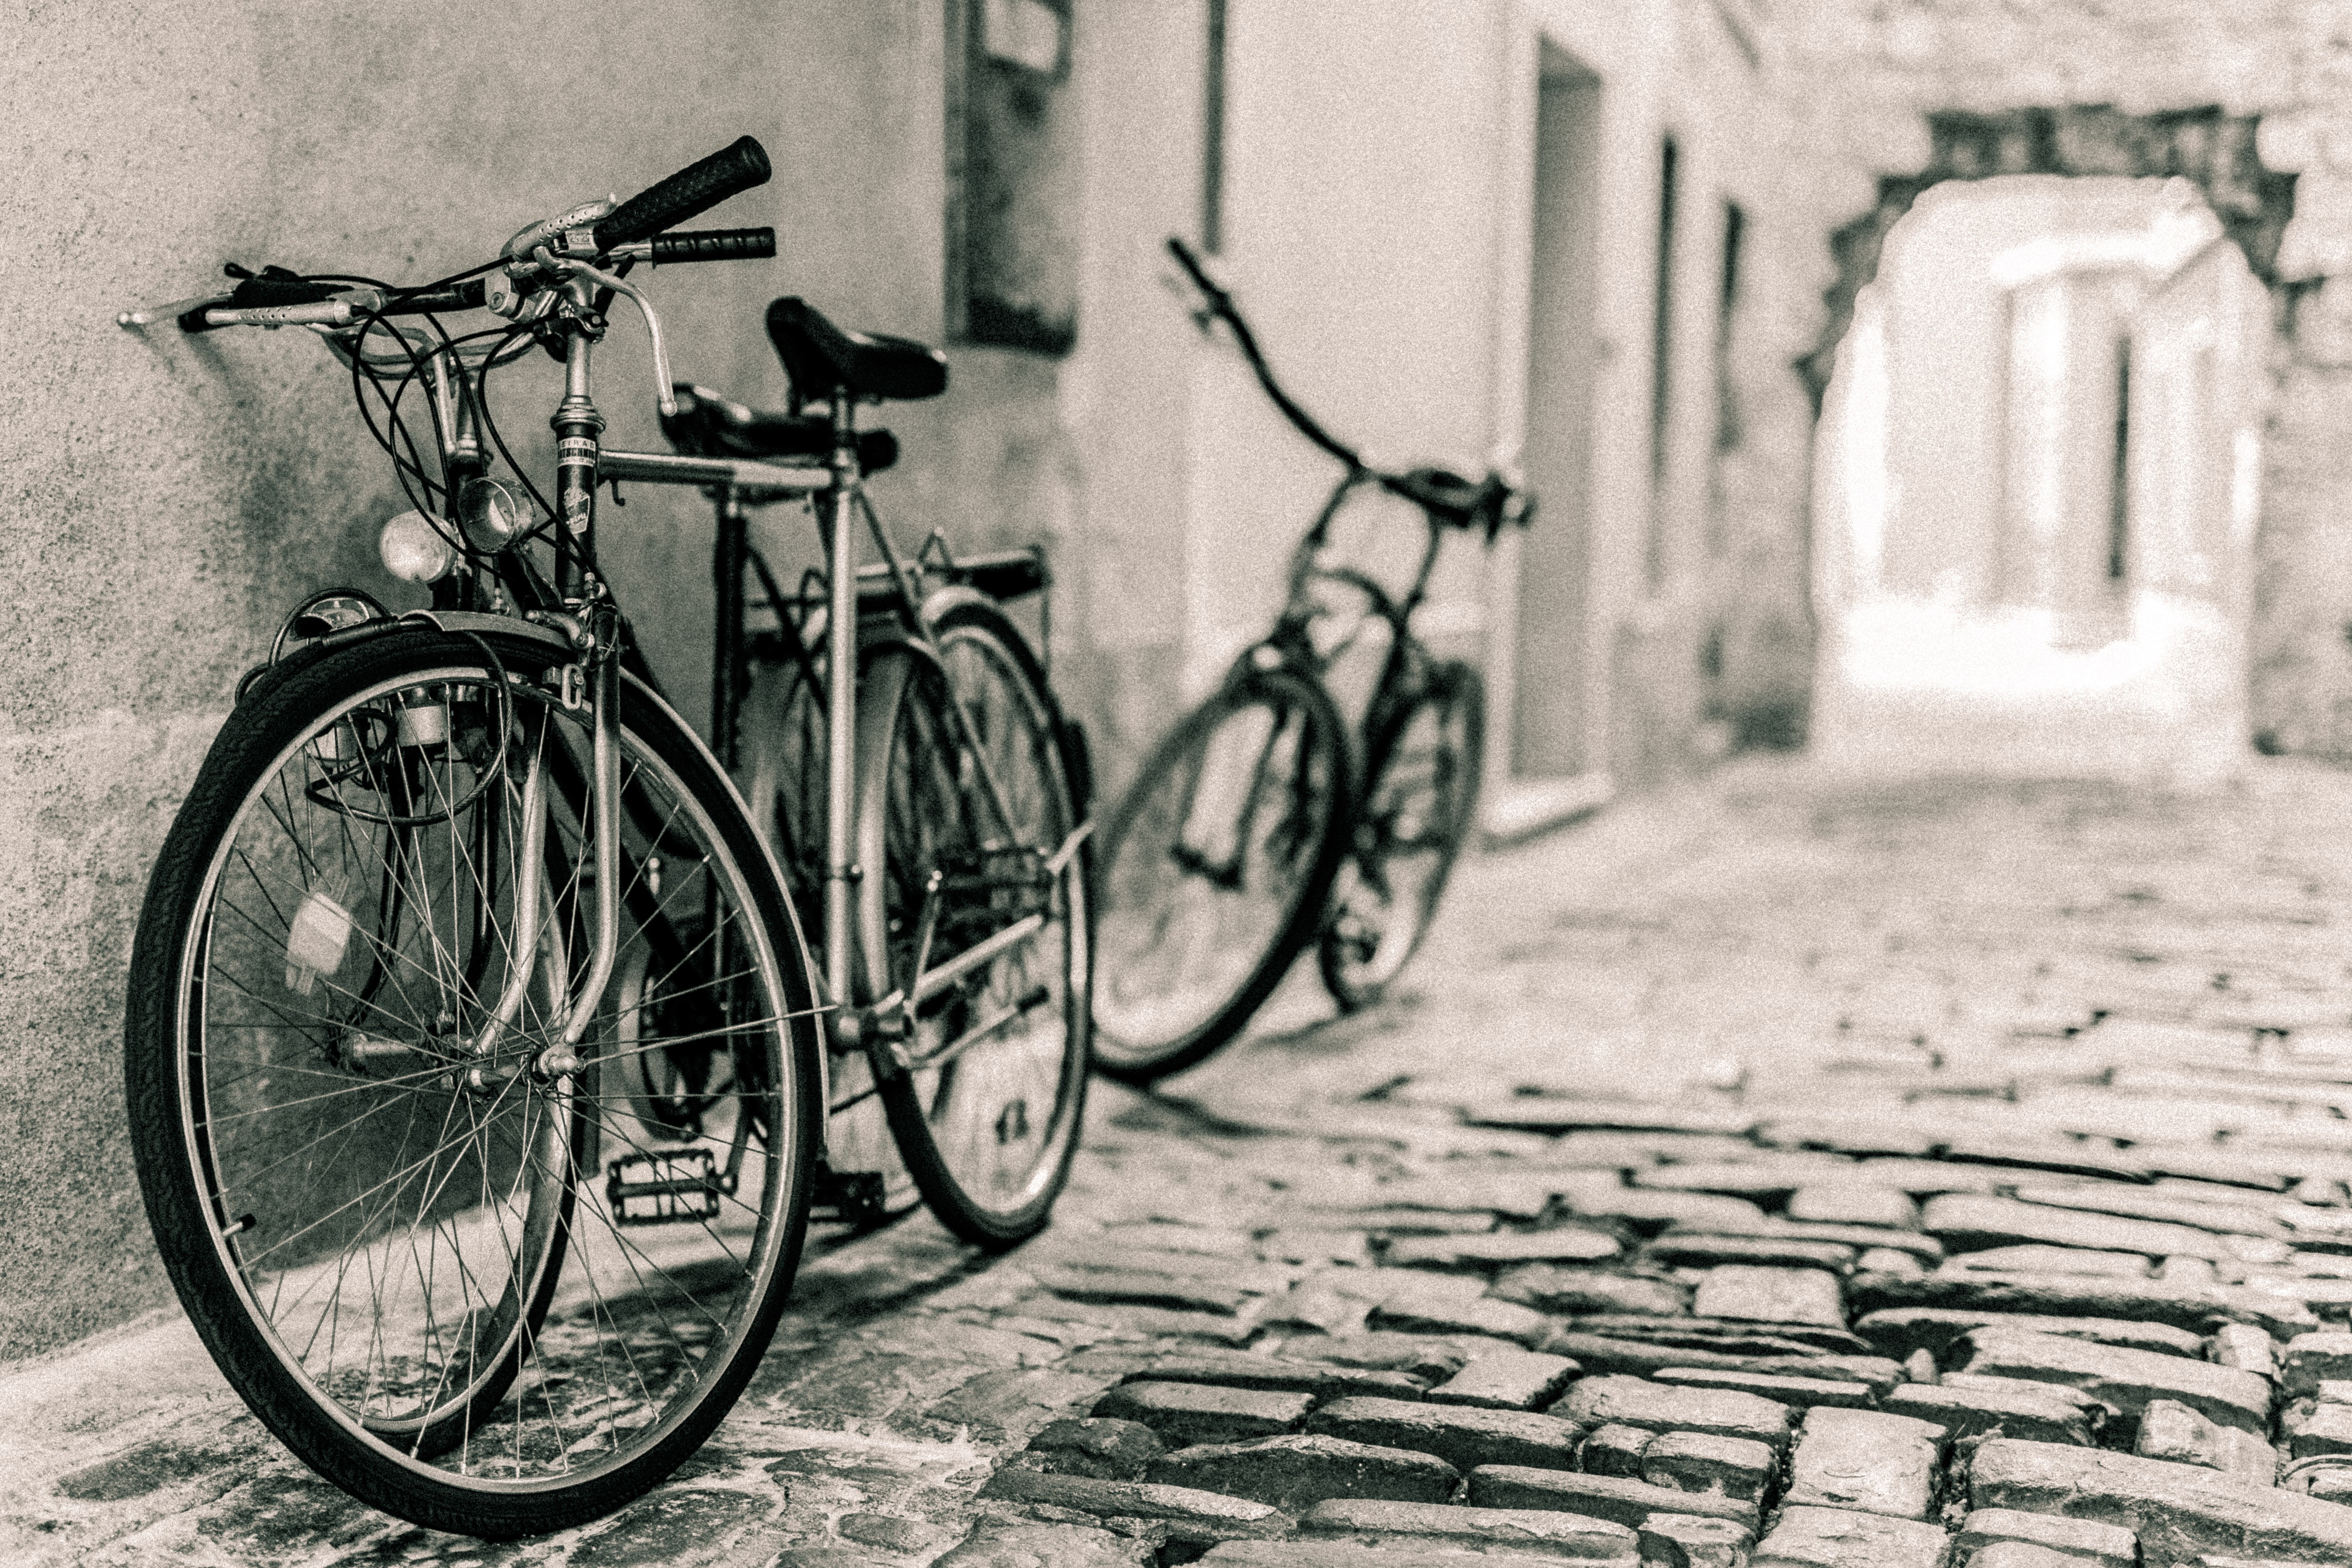 two bicycles leaning on alley way